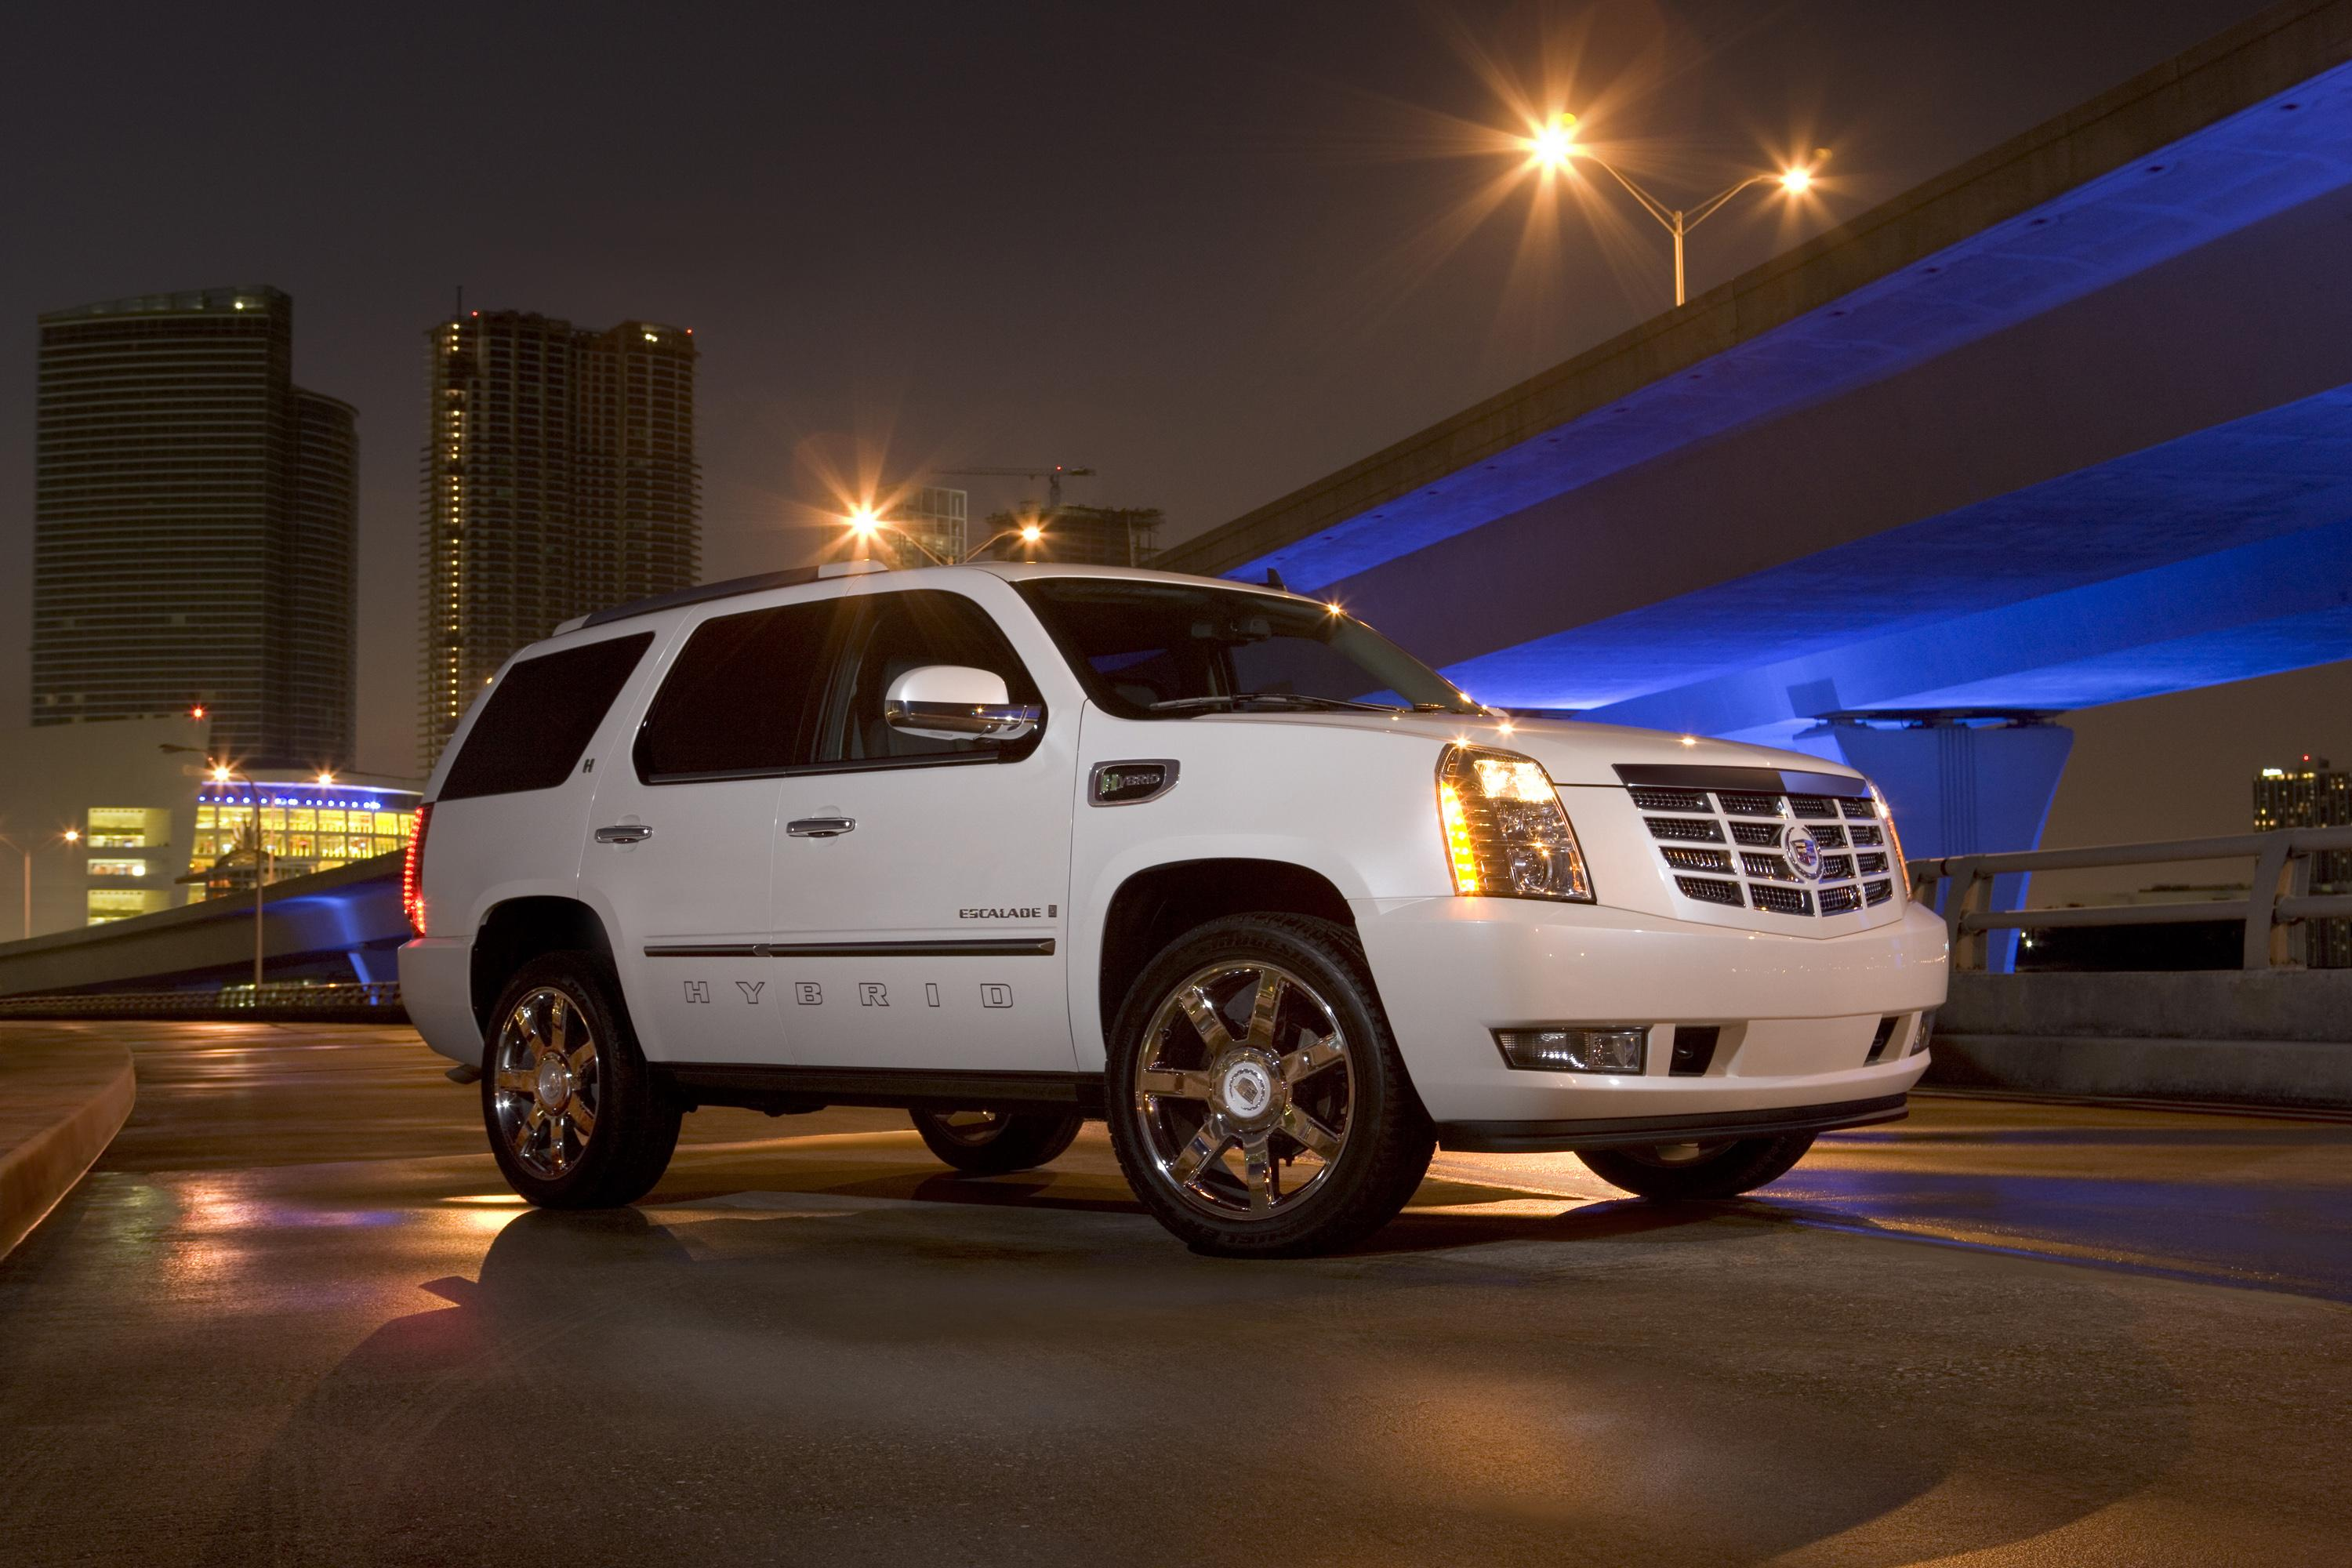 lg cfm product index img tunerworks images escalade cadillac products accessories